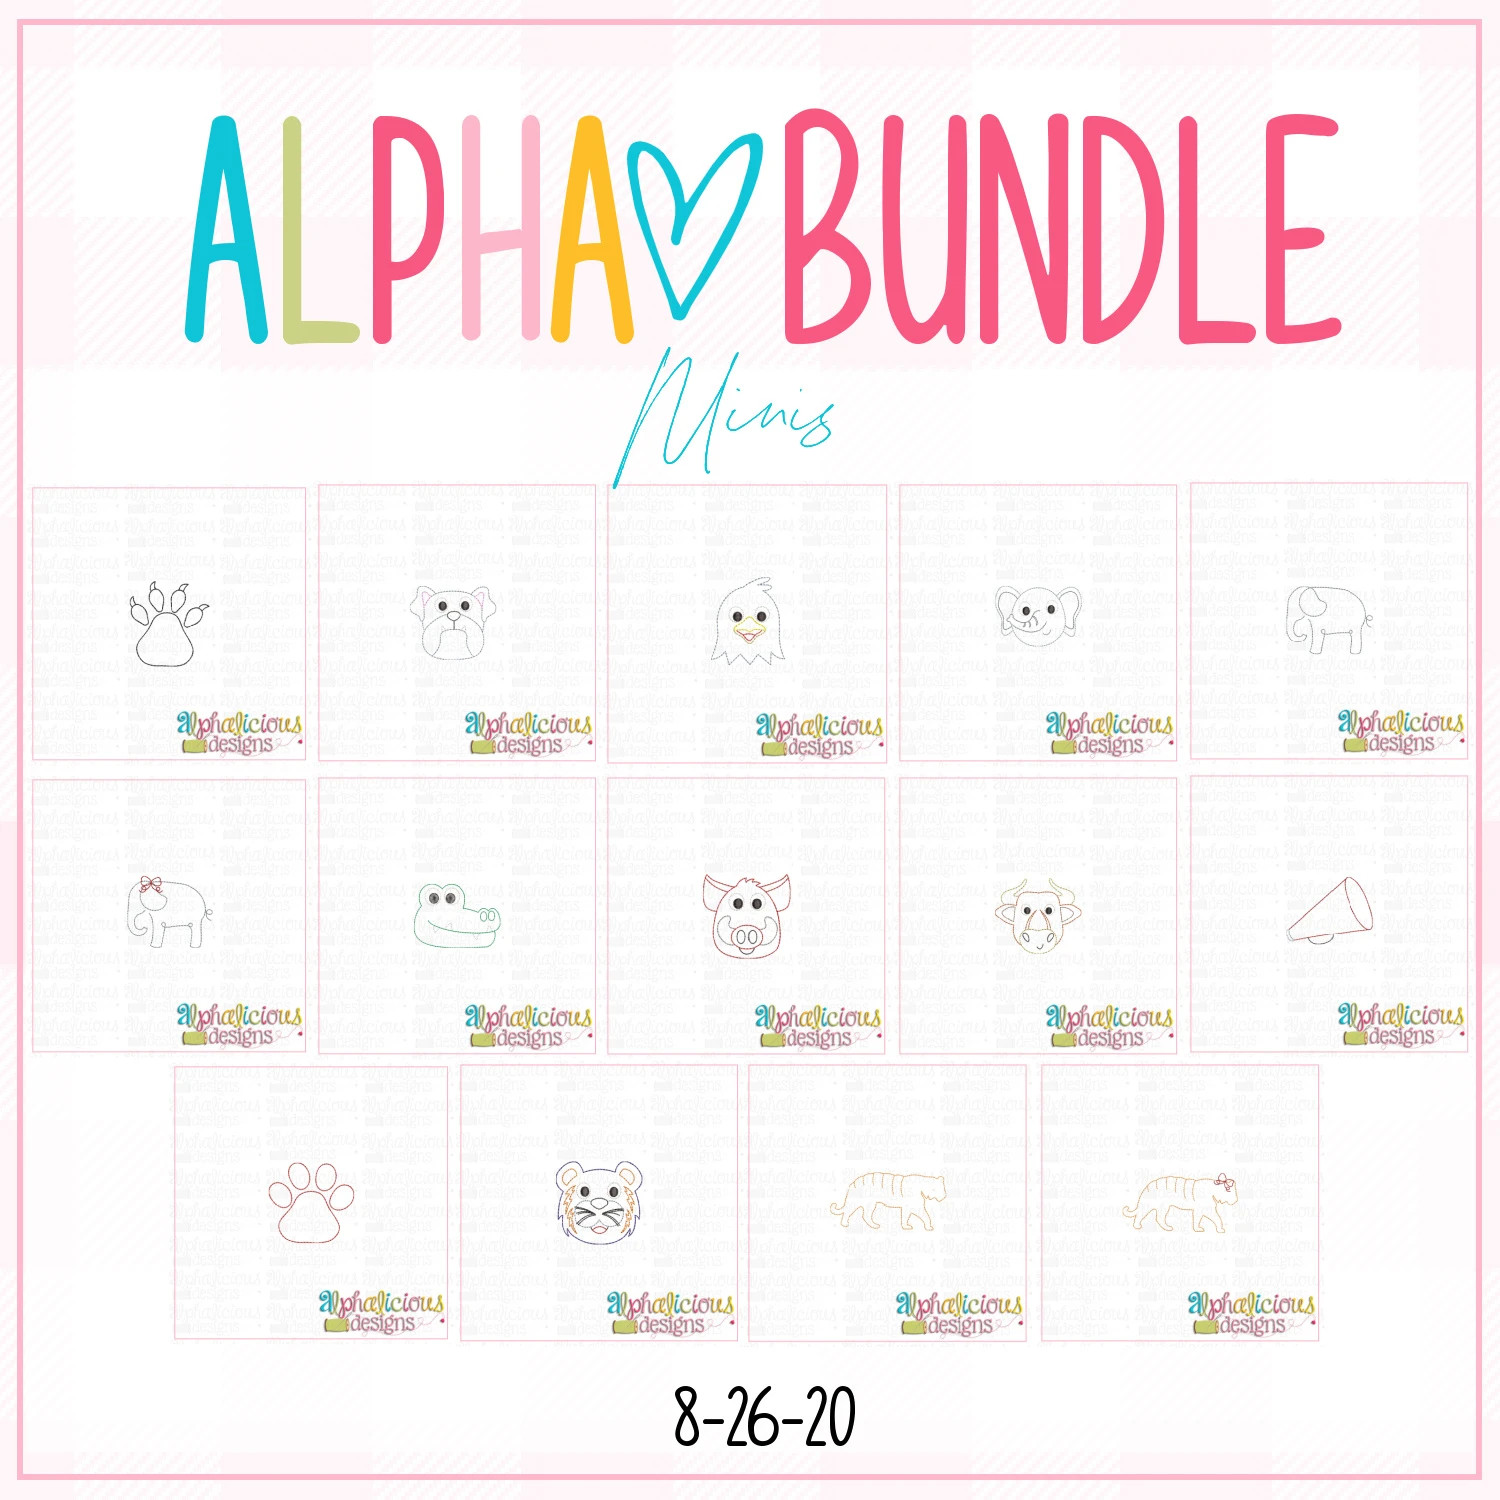 ALPHA BUNDLE-8/26/20 Release-Mini Designs